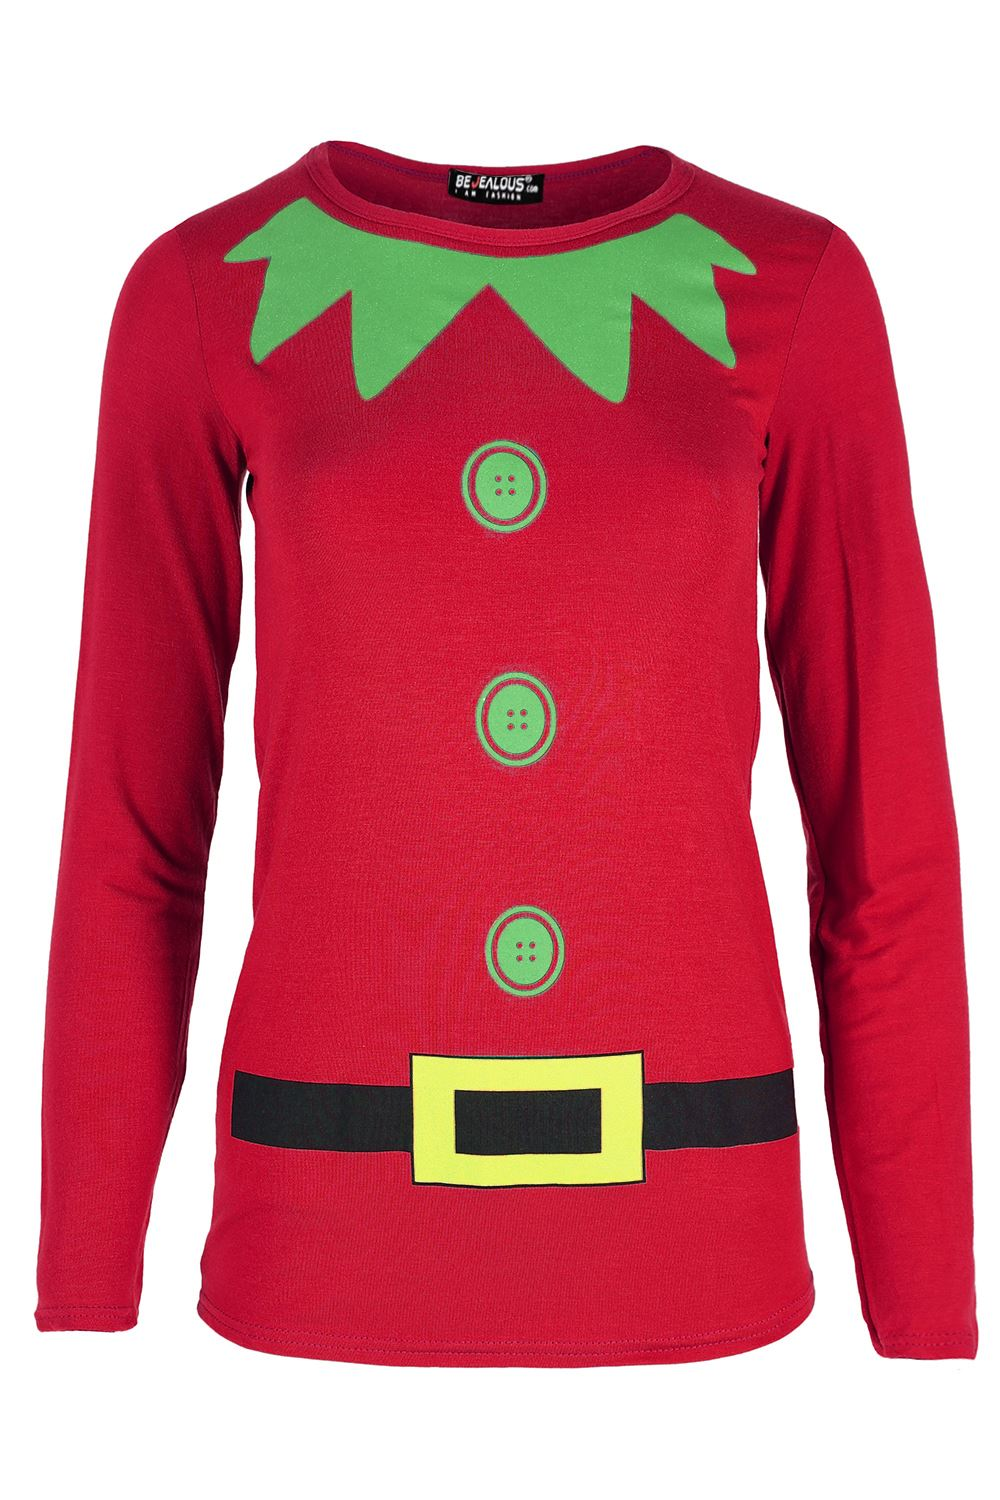 da113976dca Womens Christmas Long Sleeve Gingerbread Climb Gift Ladies Xmas ...